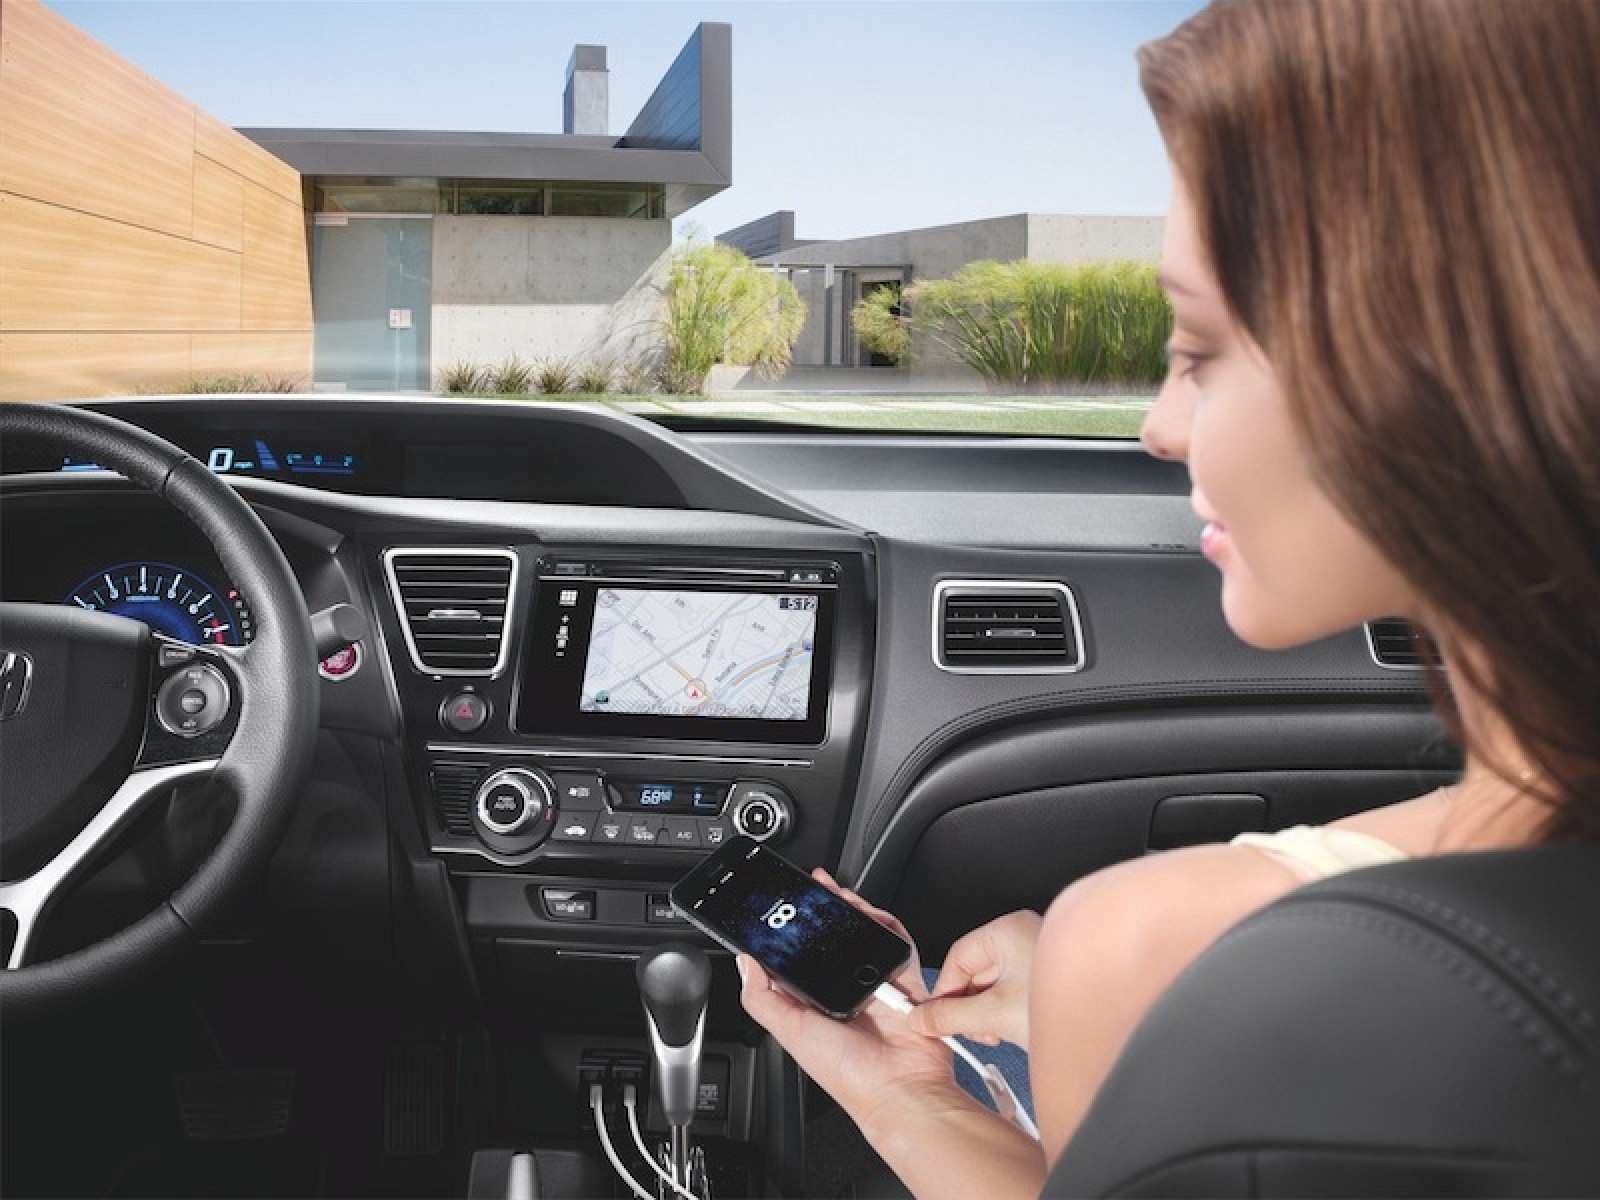 Honda Boosts iOS Car Integration with New HondaLink Services for 2014 Civic,  2015 Fit - MacRumors